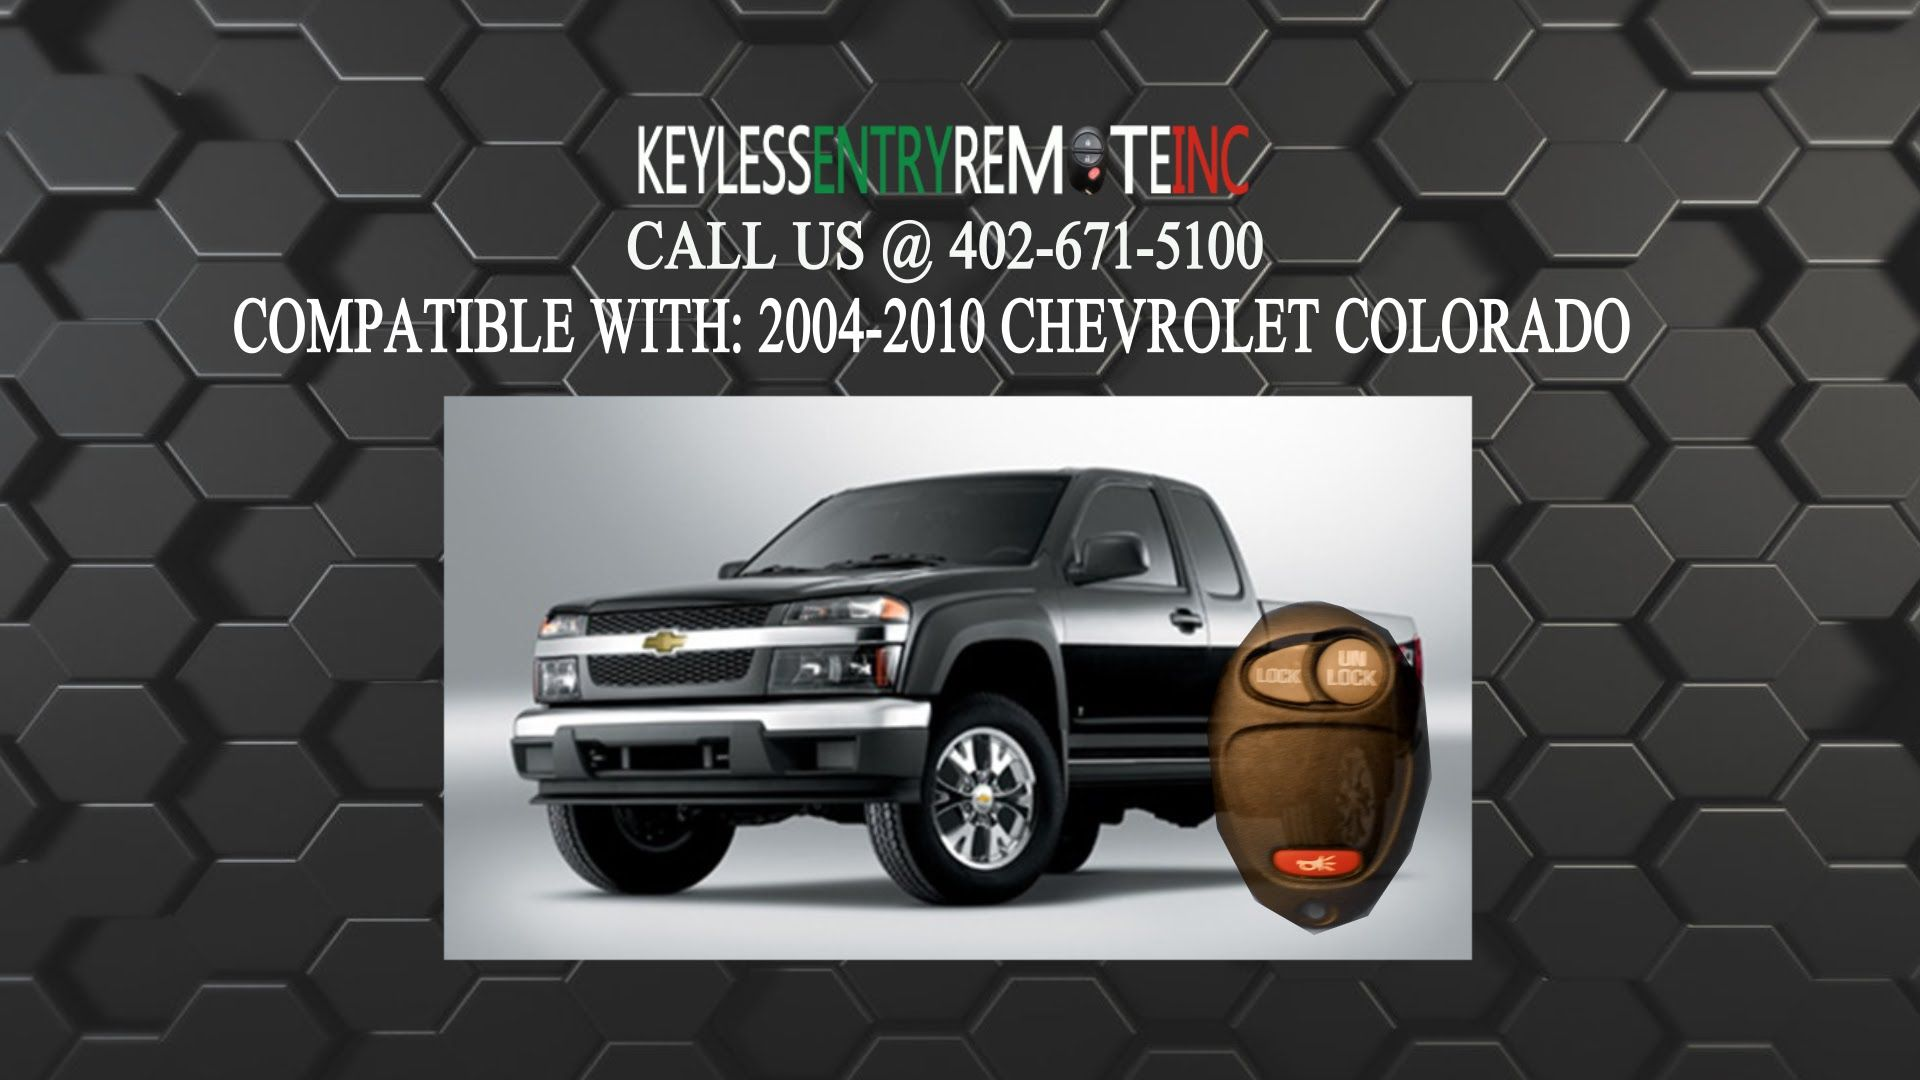 How to replace a chevrolet colorado key fob battery 2004